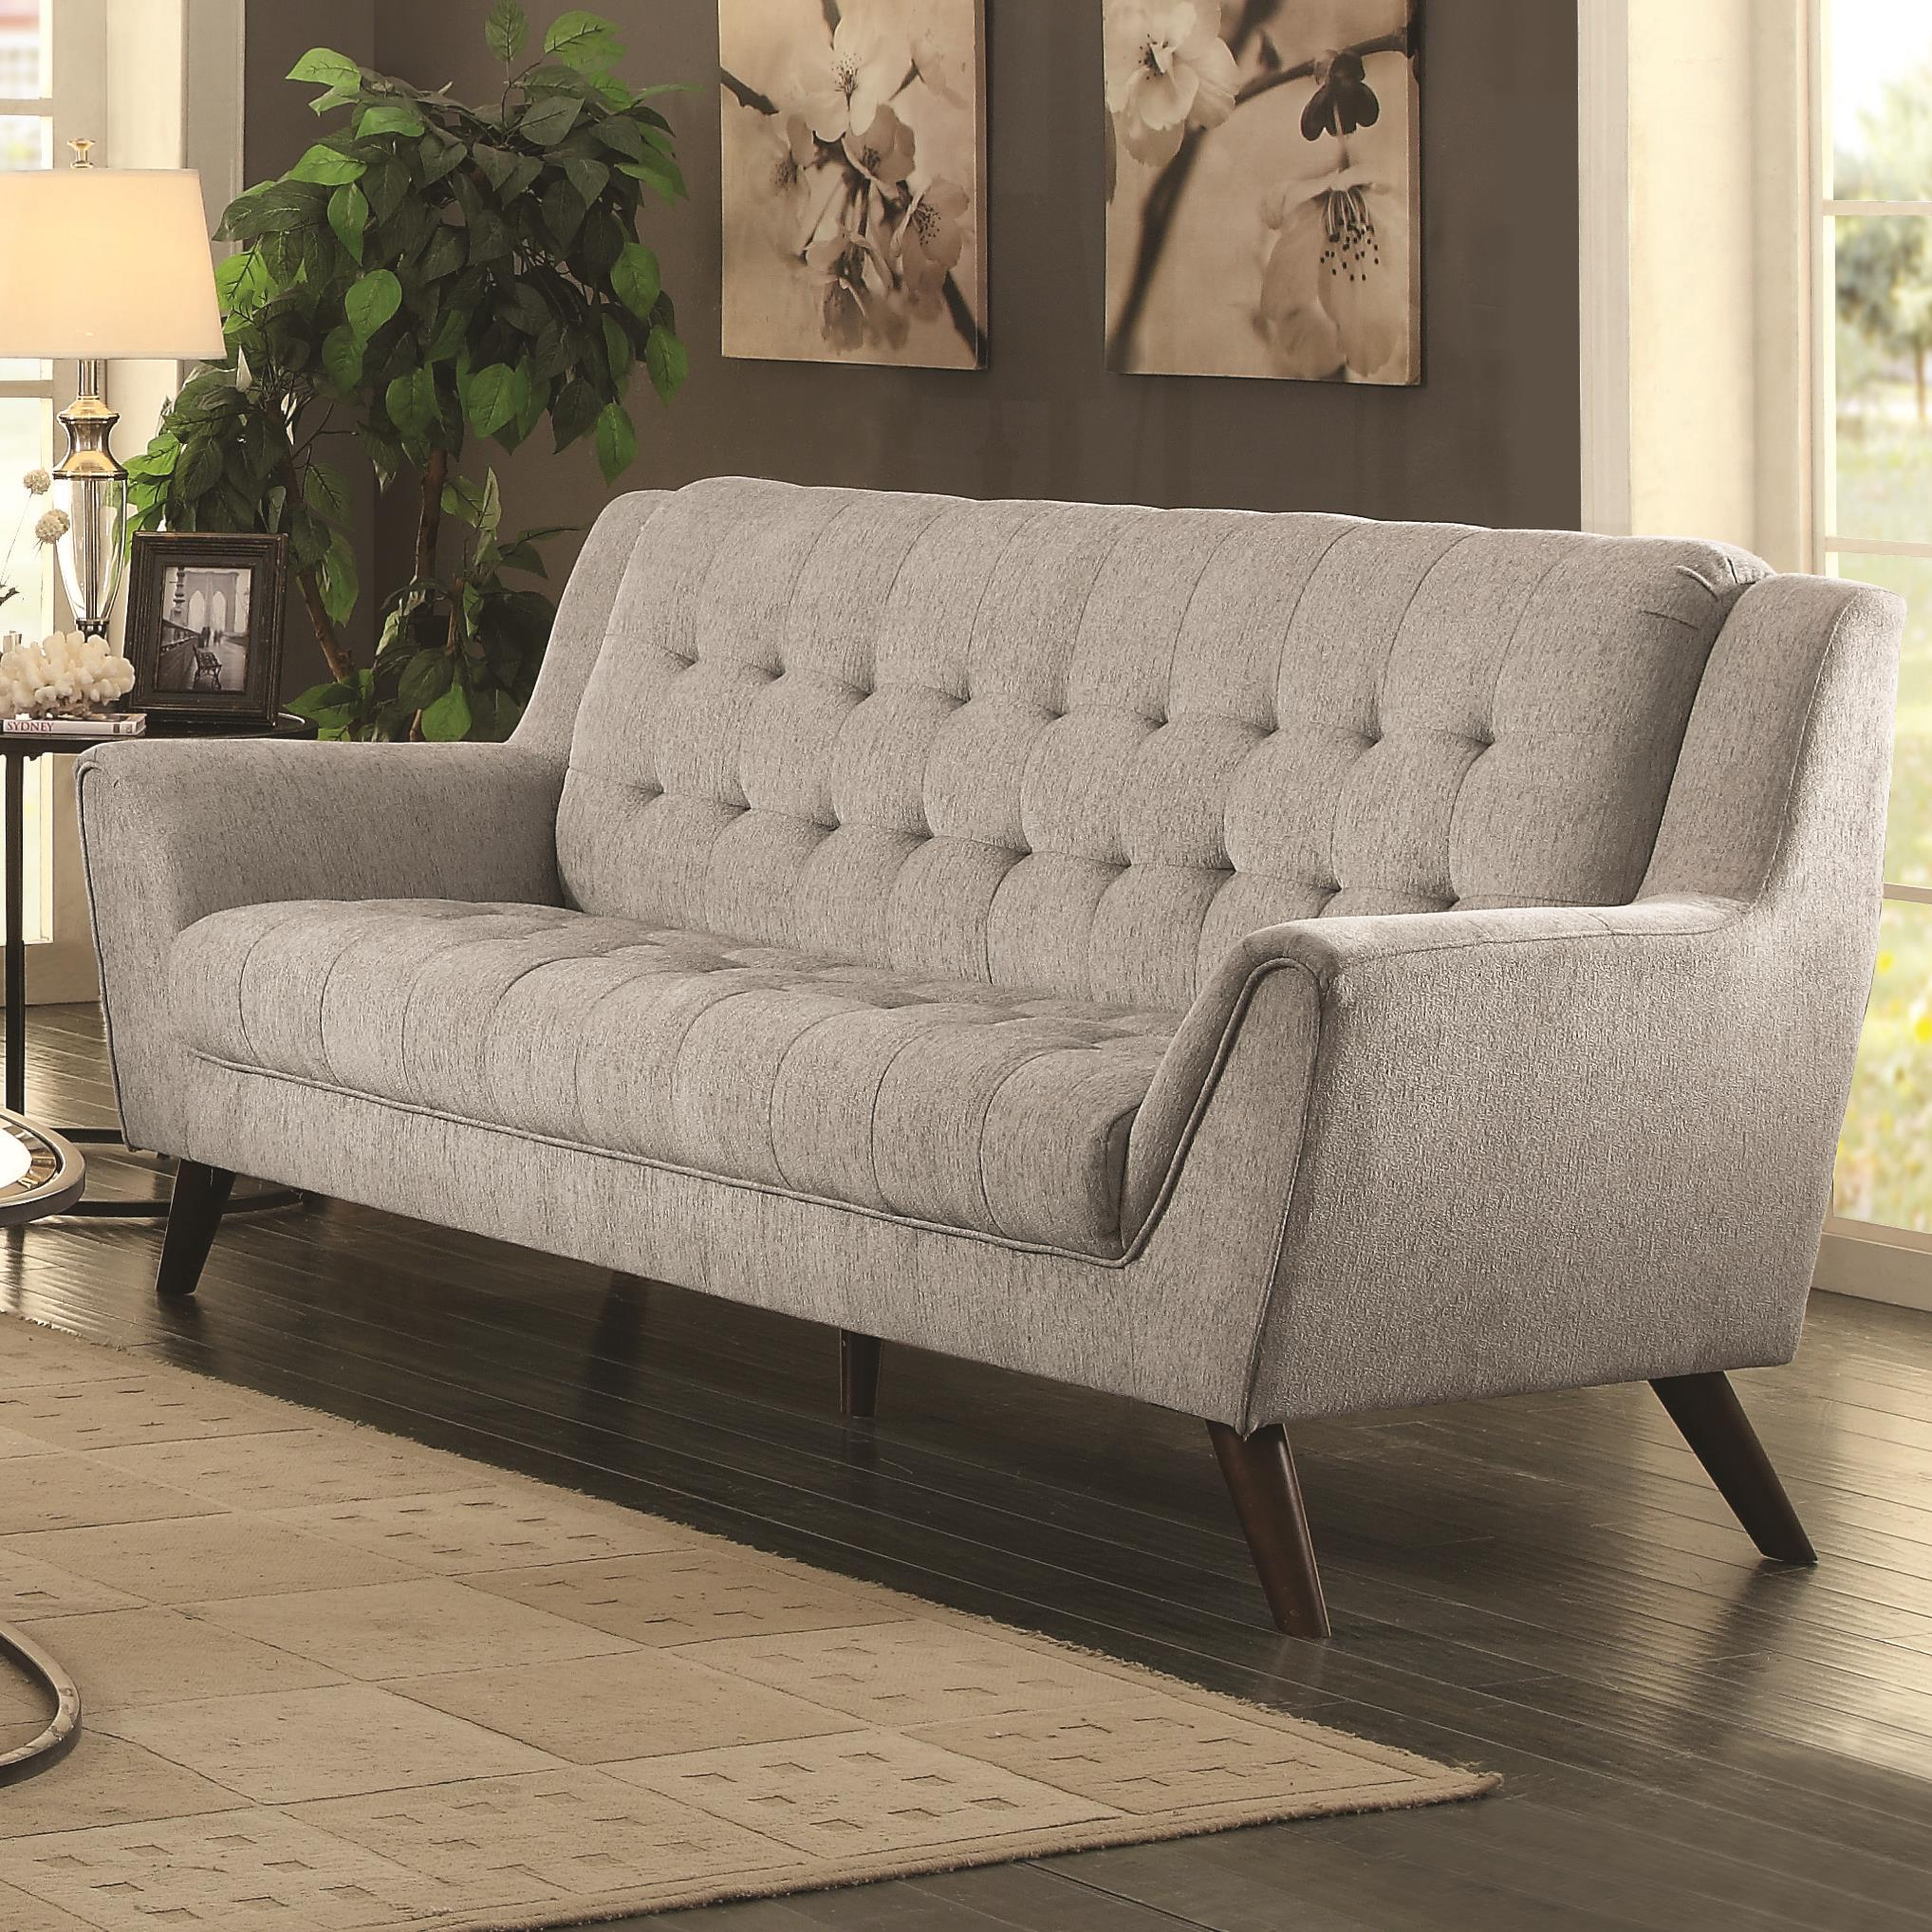 Baby Natalia Mid-Century Modern Sofa by Coaster at Value City Furniture